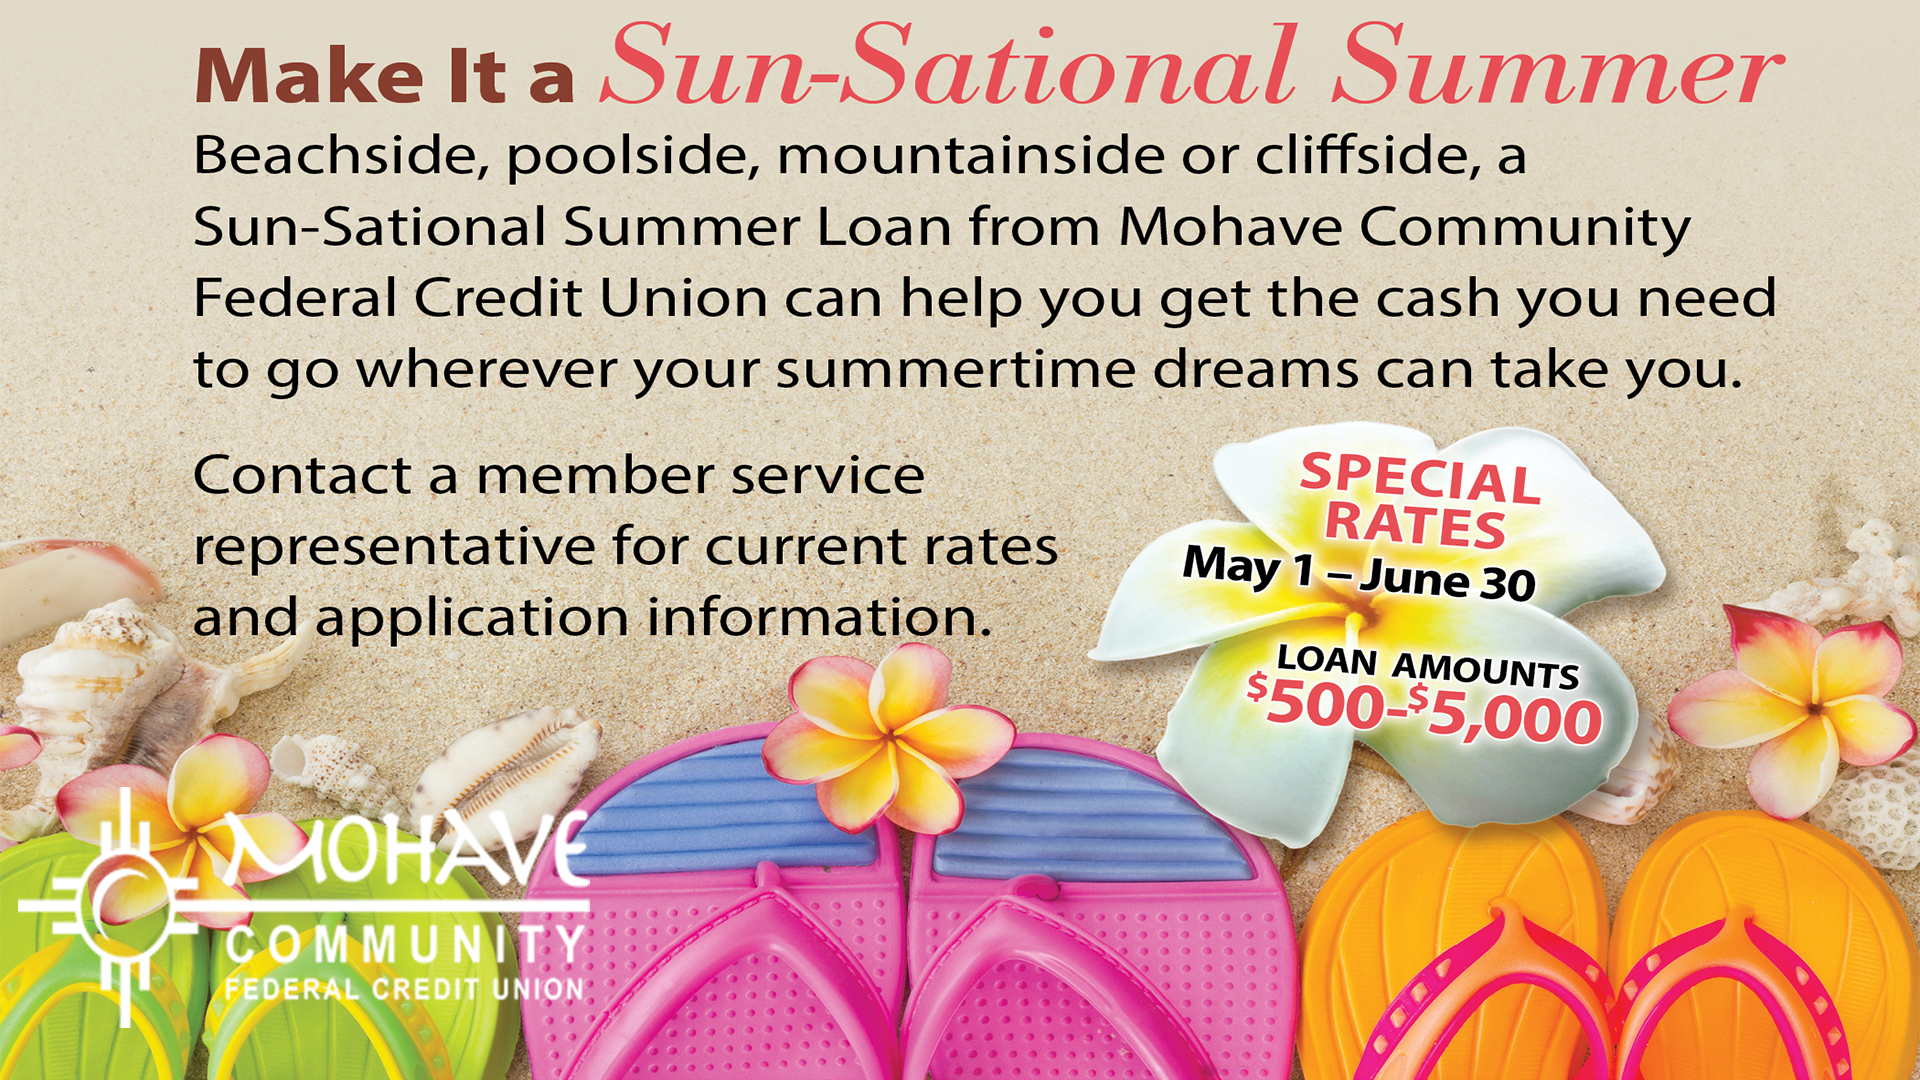 Want to take that vacation? Contact Mohave Federal Credit Union at 928-753-8000